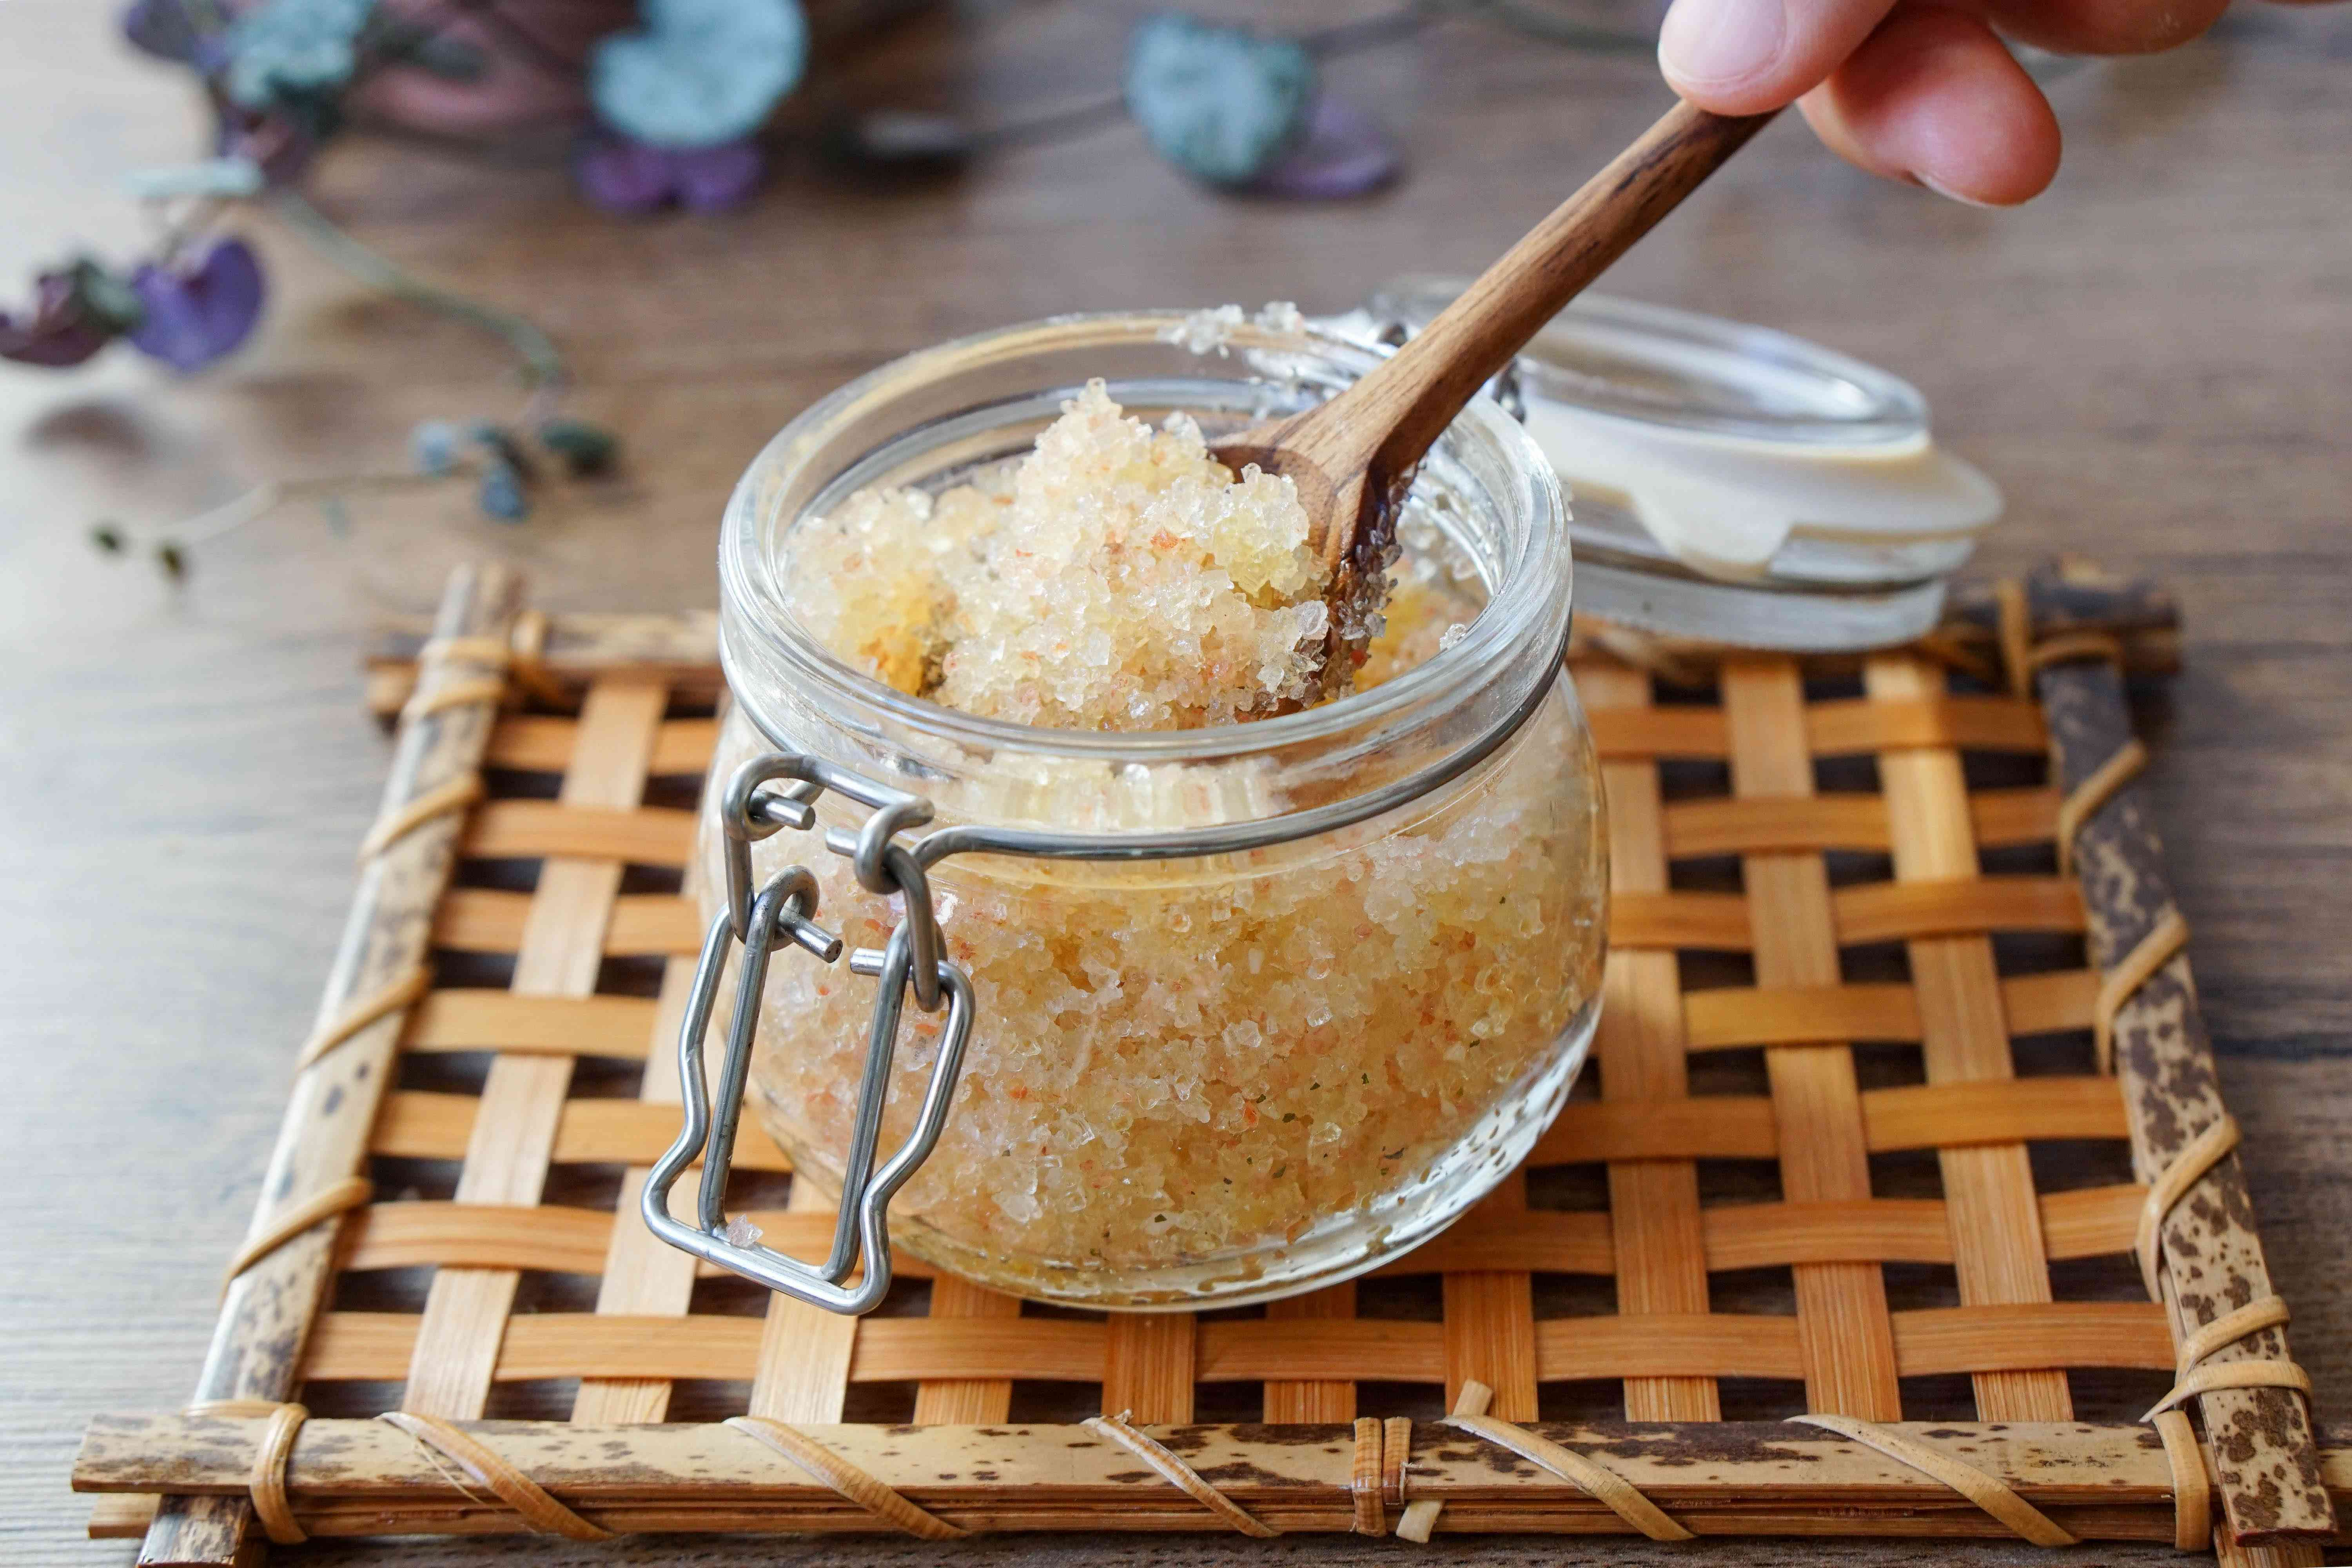 salt scrub mixture is spooned into glass container with spring-loaded lid